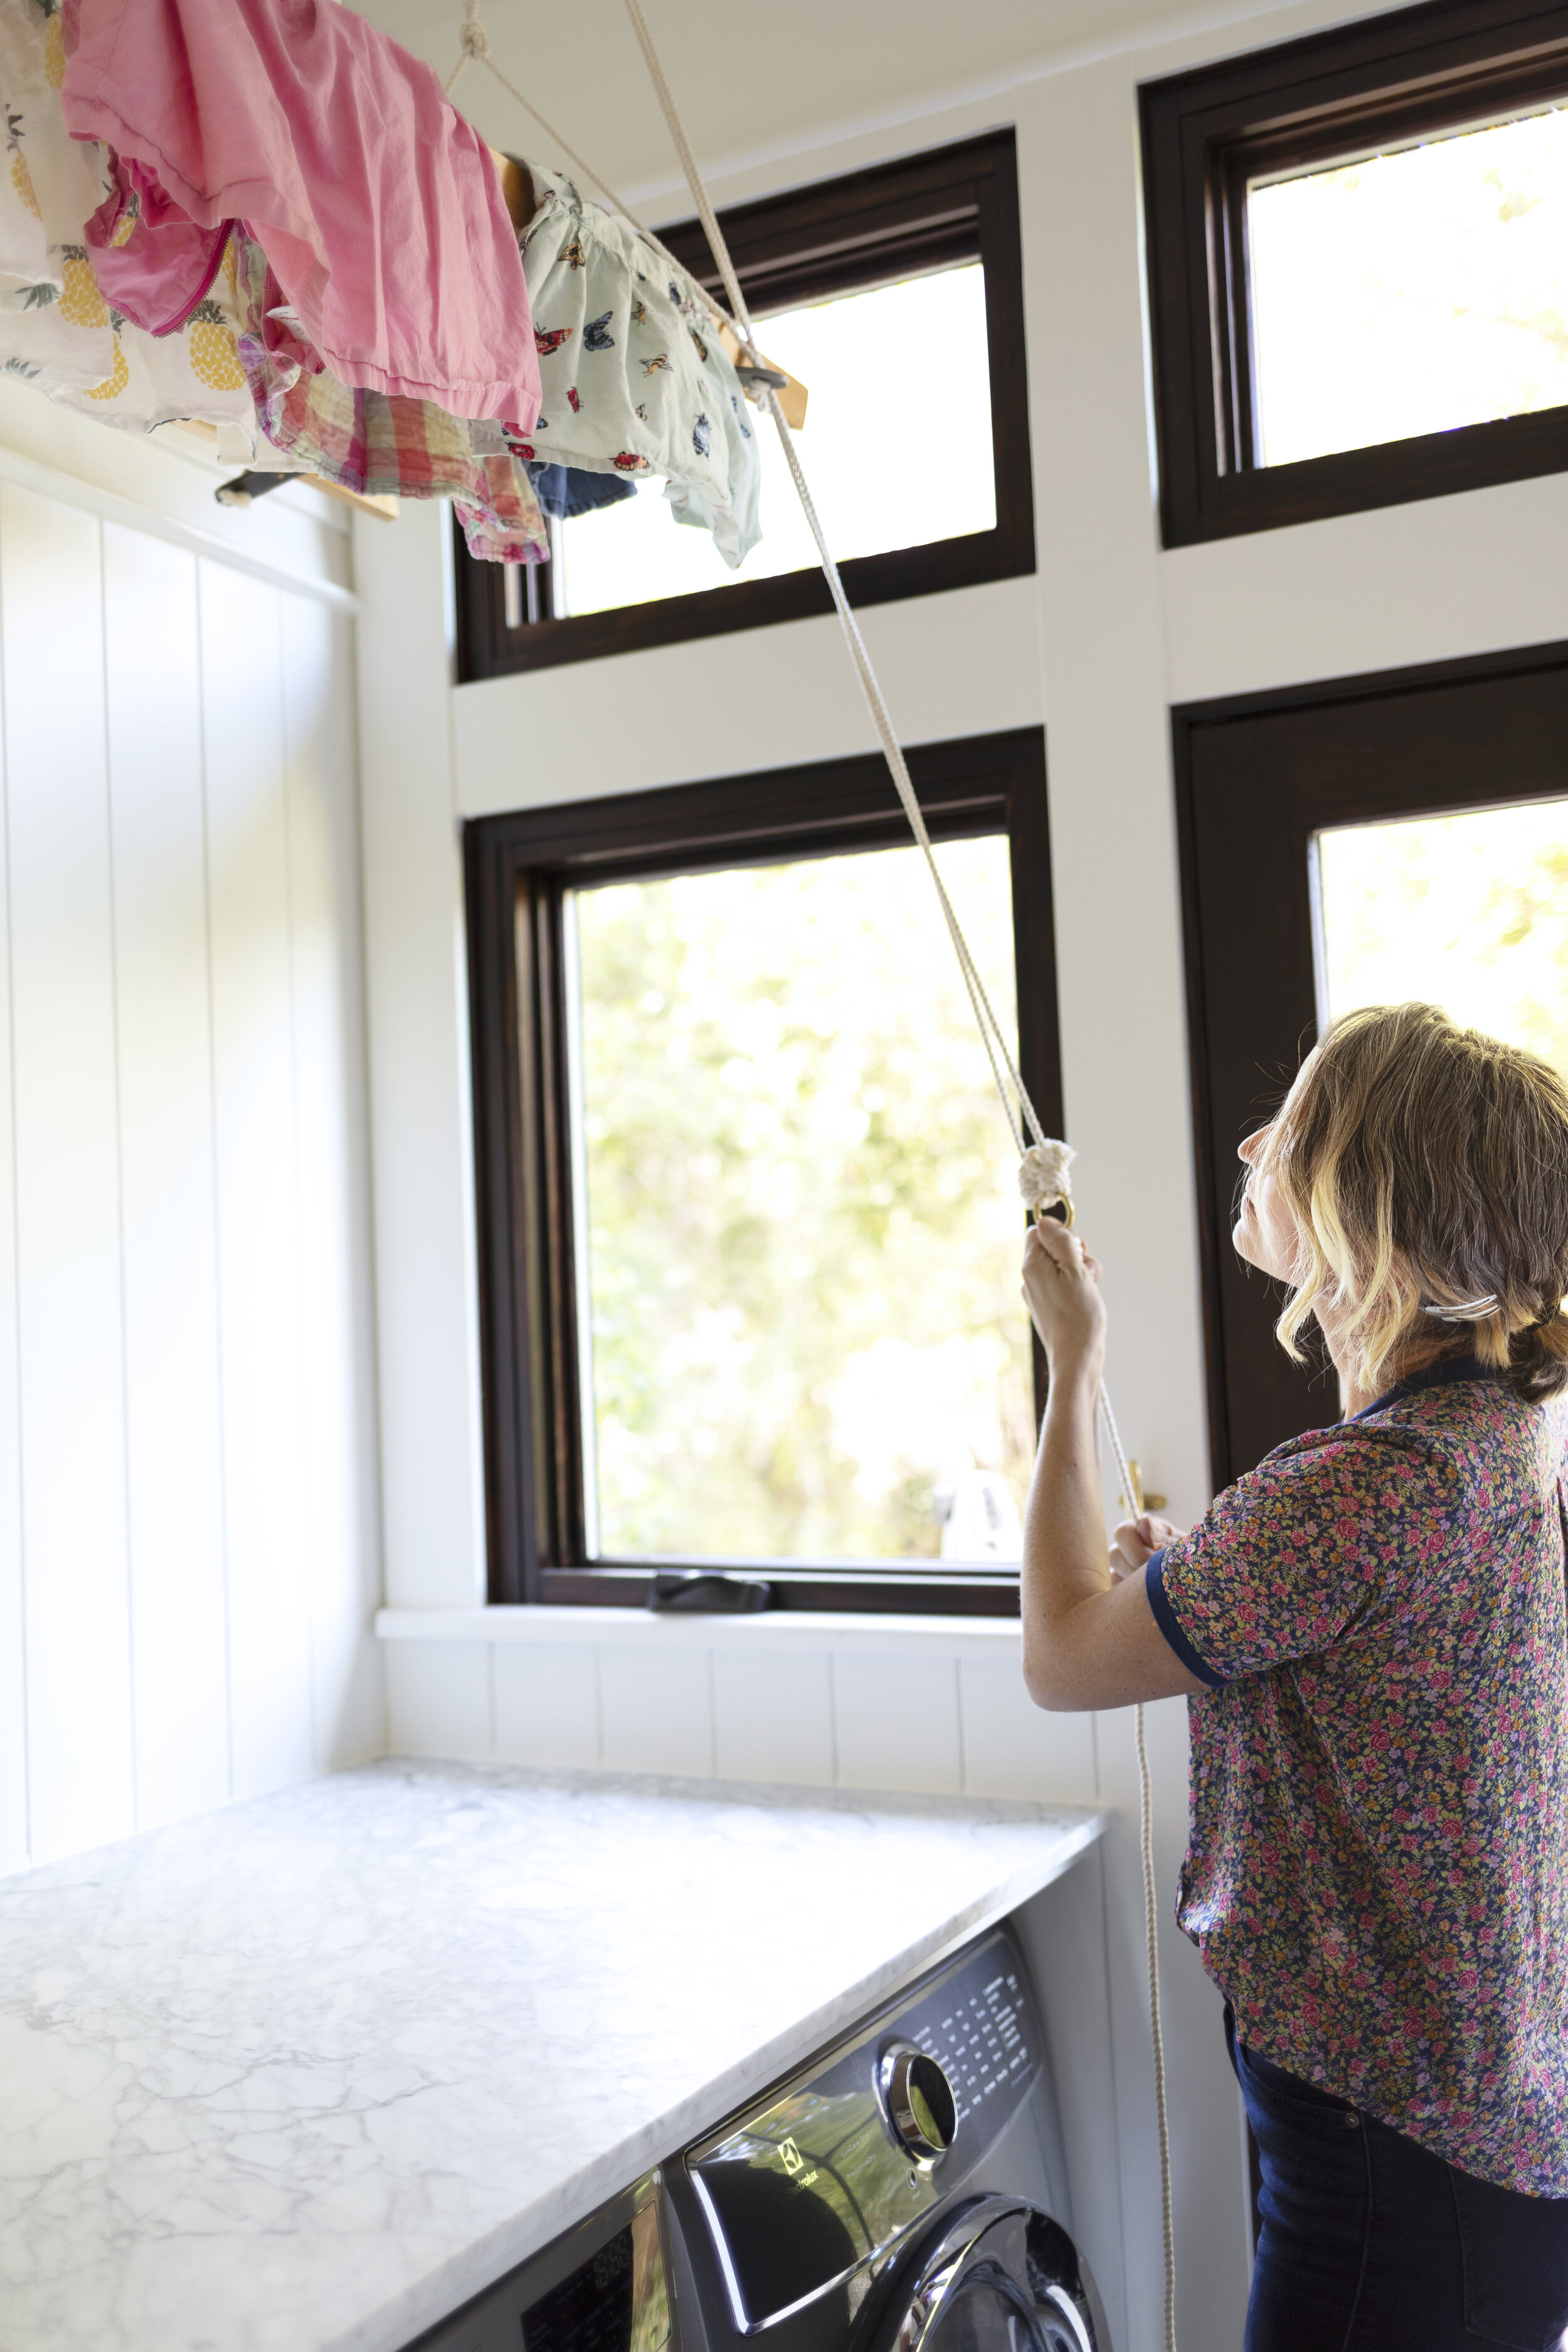 How To Build A Hanging Laundry Rack Aka An English Style Airer The Grit And Polish